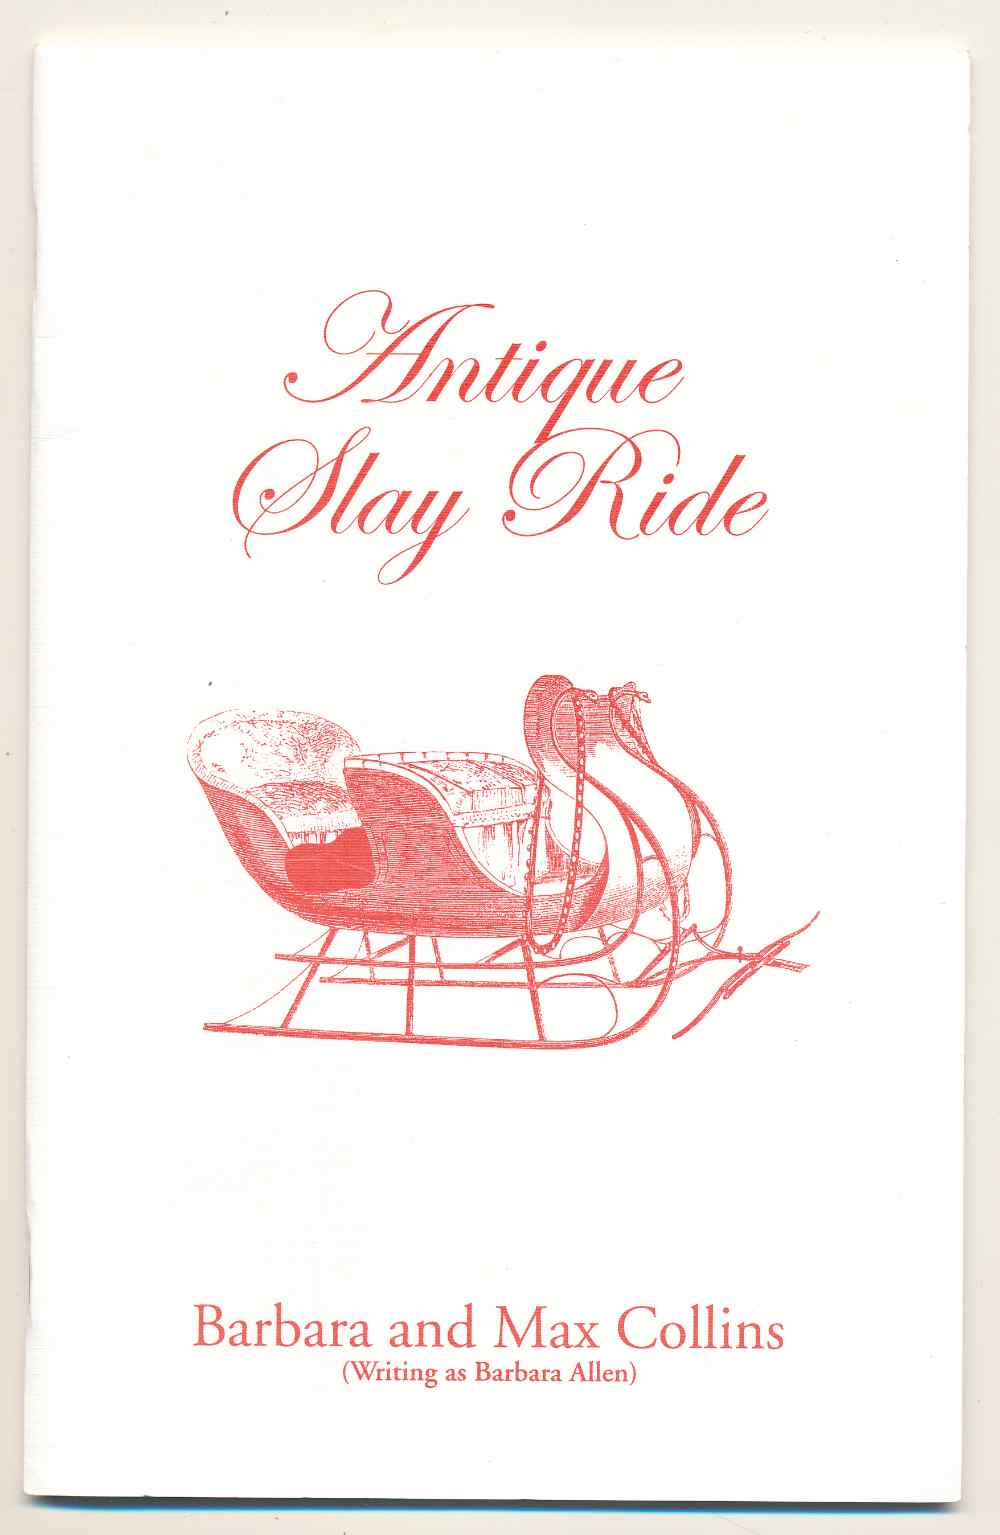 Antique slay ride